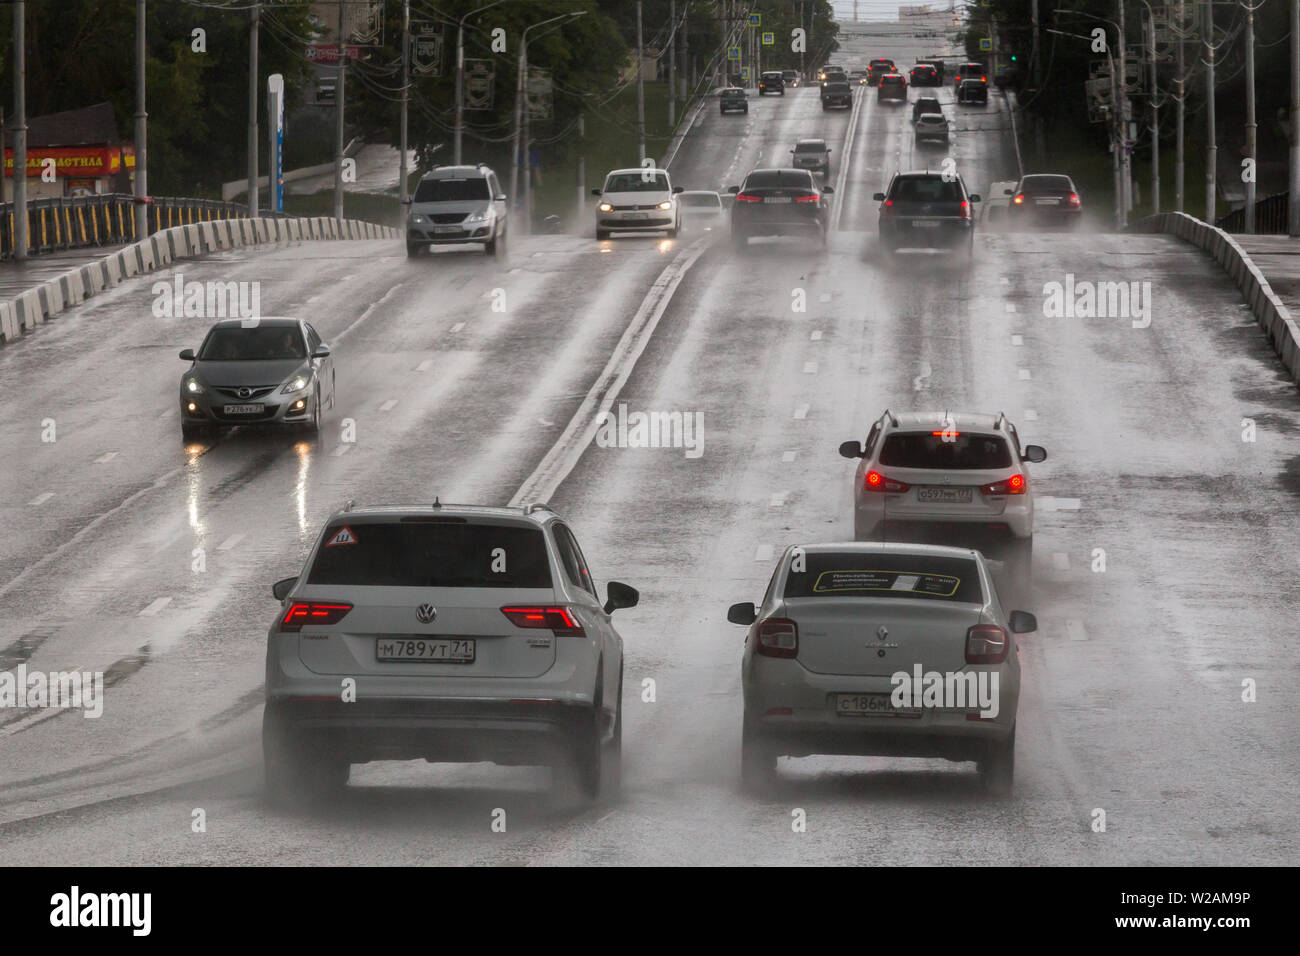 TULA, RUSSIA - JULY 6, 2019: Cars on summer hilly road moving after rain. - Stock Image